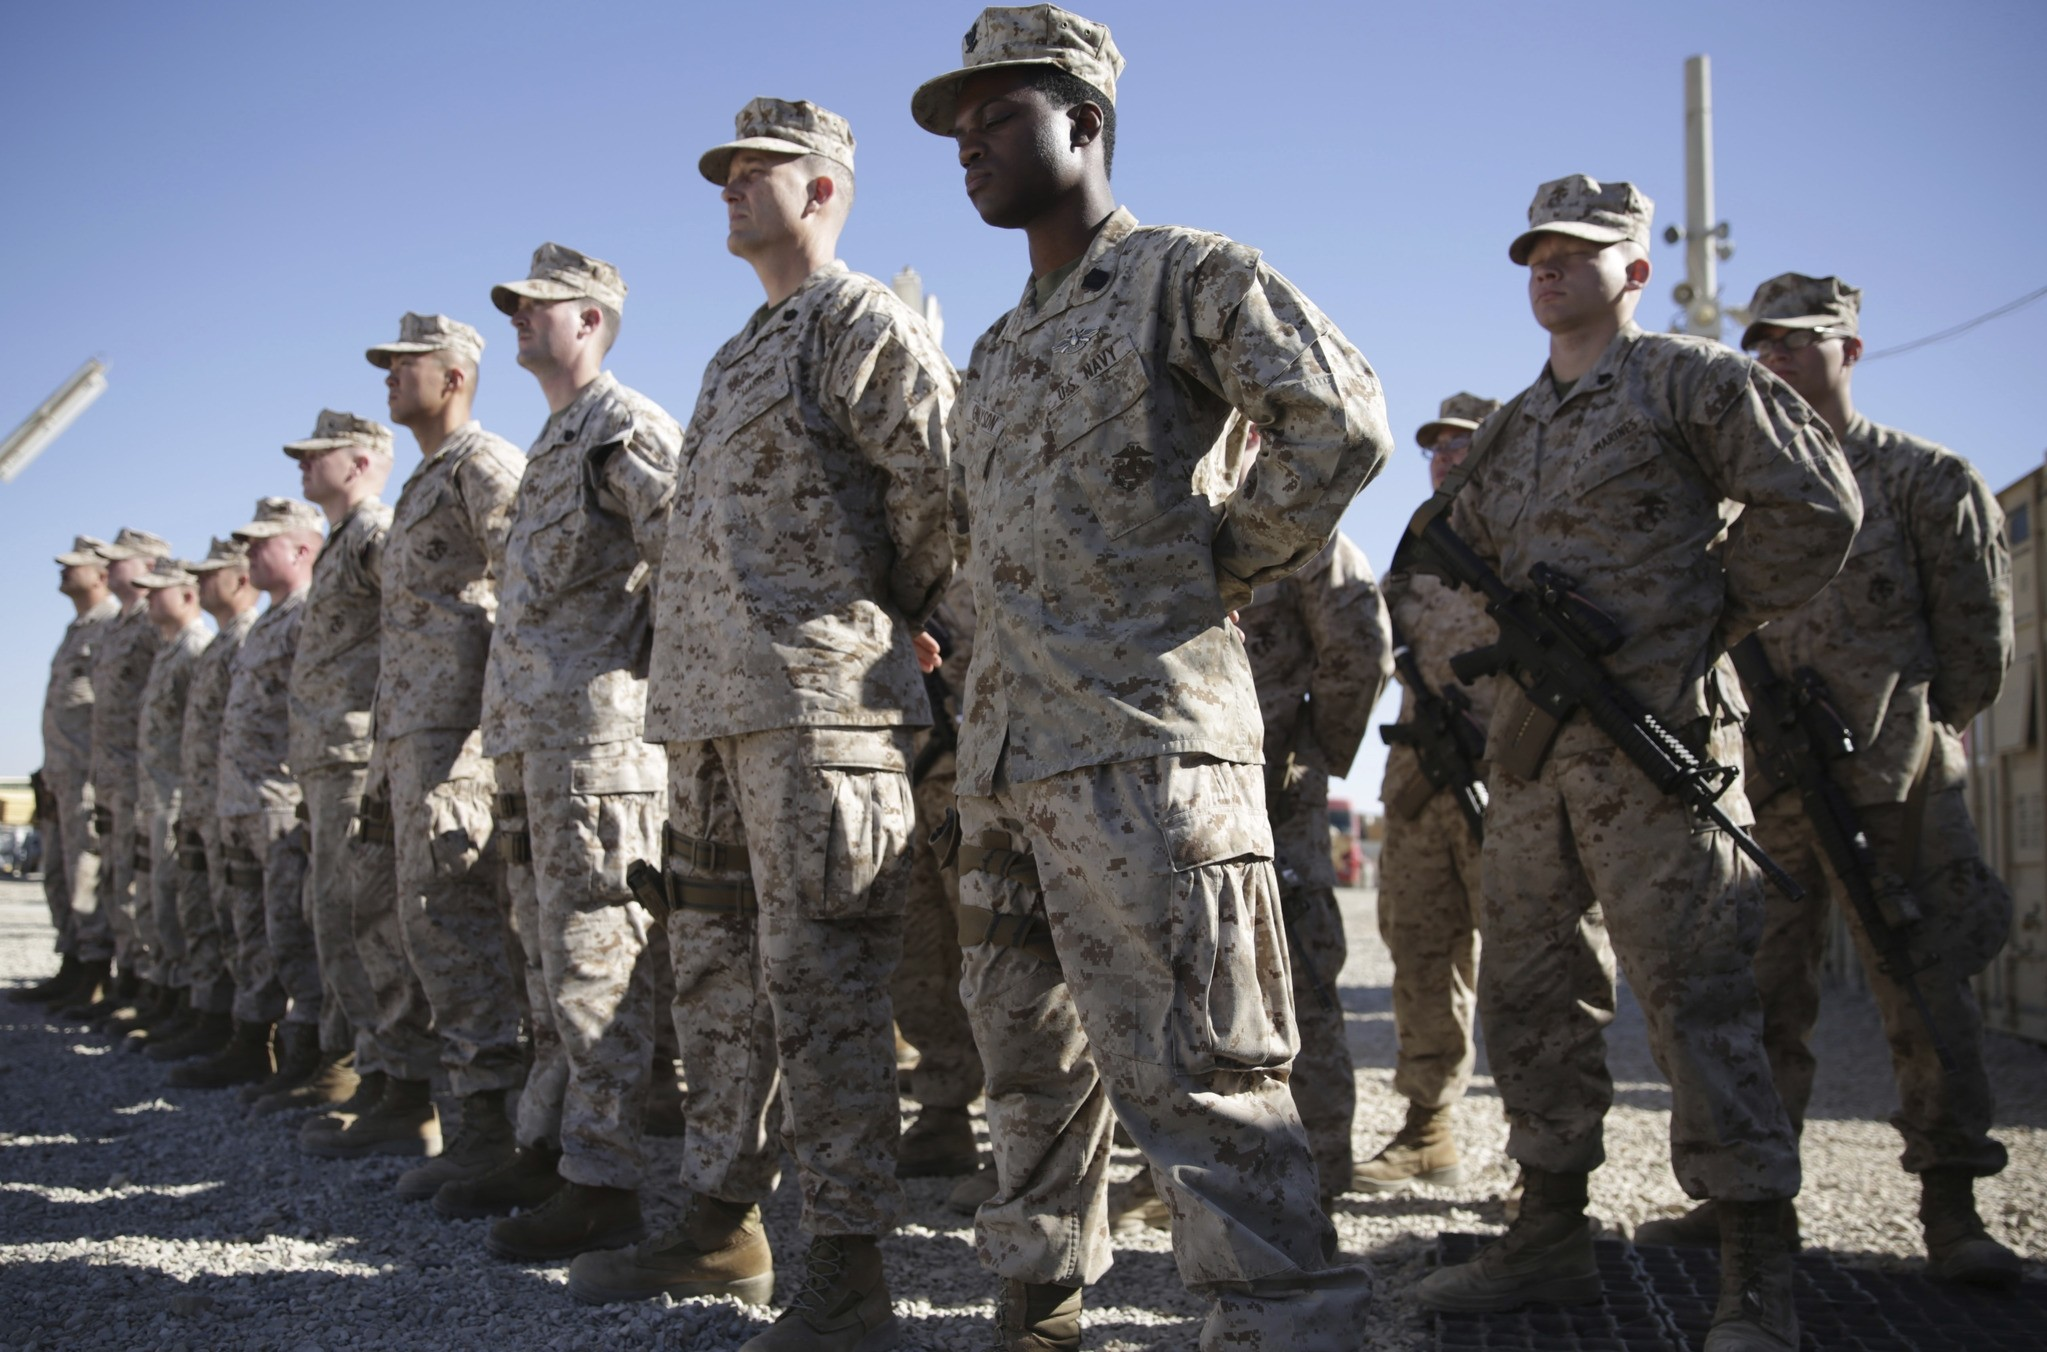 U.S. Marines watch during the change of command ceremony at Task Force Southwest military field in Shorab military camp of Helmand province, Afghanistan.(AP Photo)